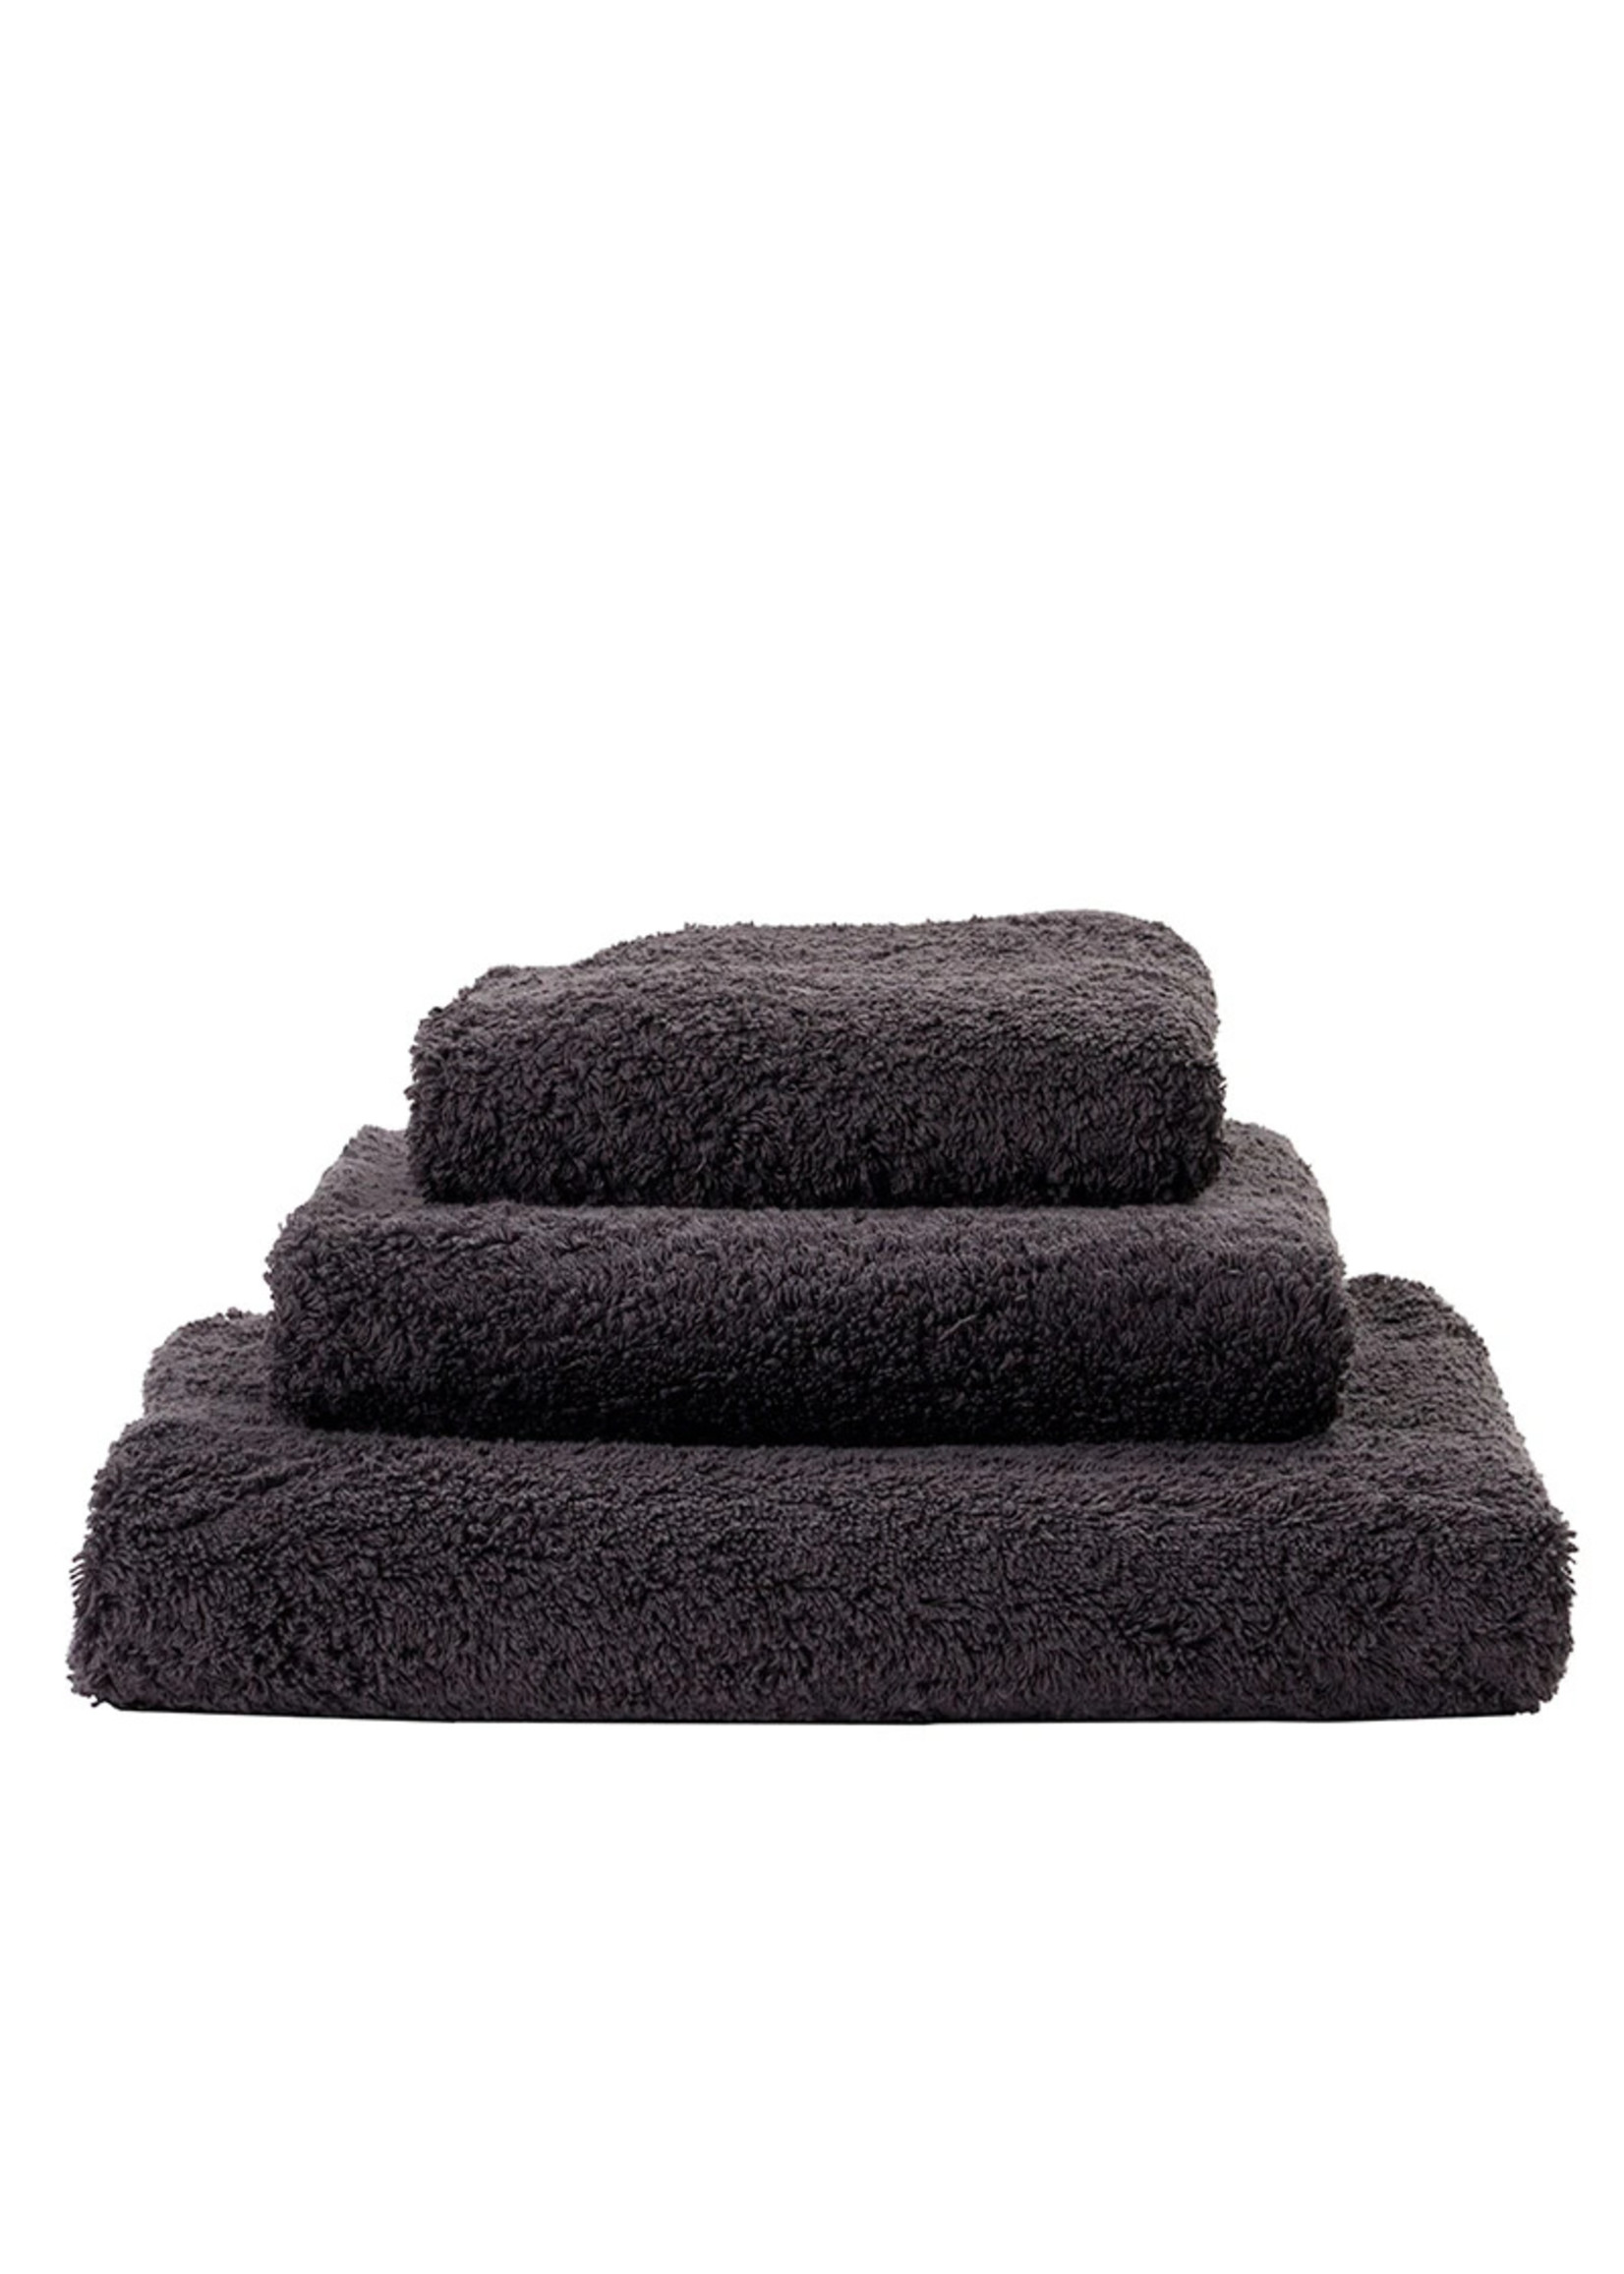 Abyss & Habidecor Super Pile Metal Towels